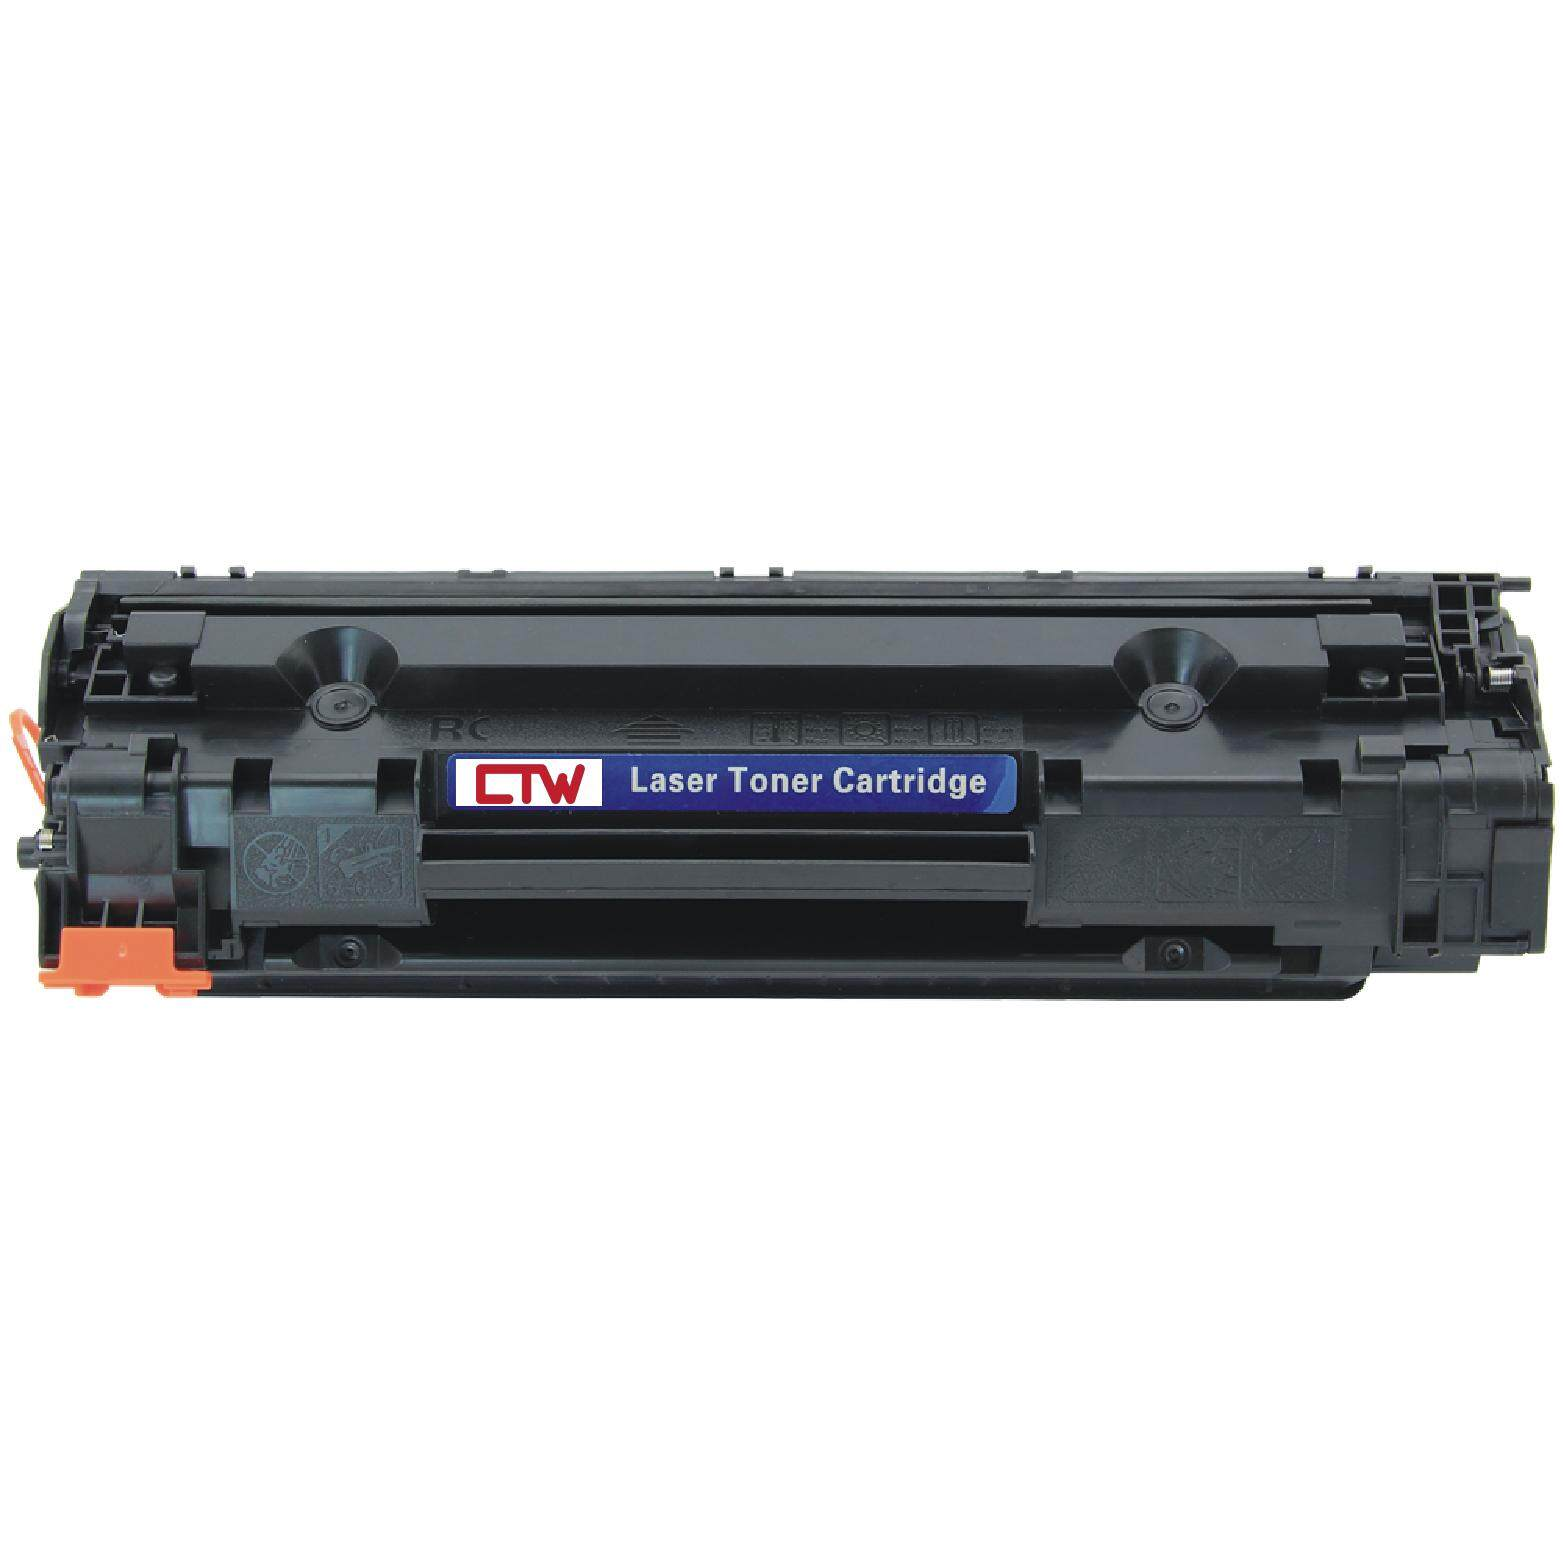 Sell Hp 285a 435a Cheapest Best Quality My Store Toner 35a Compatible Cb435a Laserjet P1002 P1003 P1004 P1005 P1006 P1009 Grade A Myr 45 Linko Ce285a Laser Cartridge For Use In Ce285 85a P1505